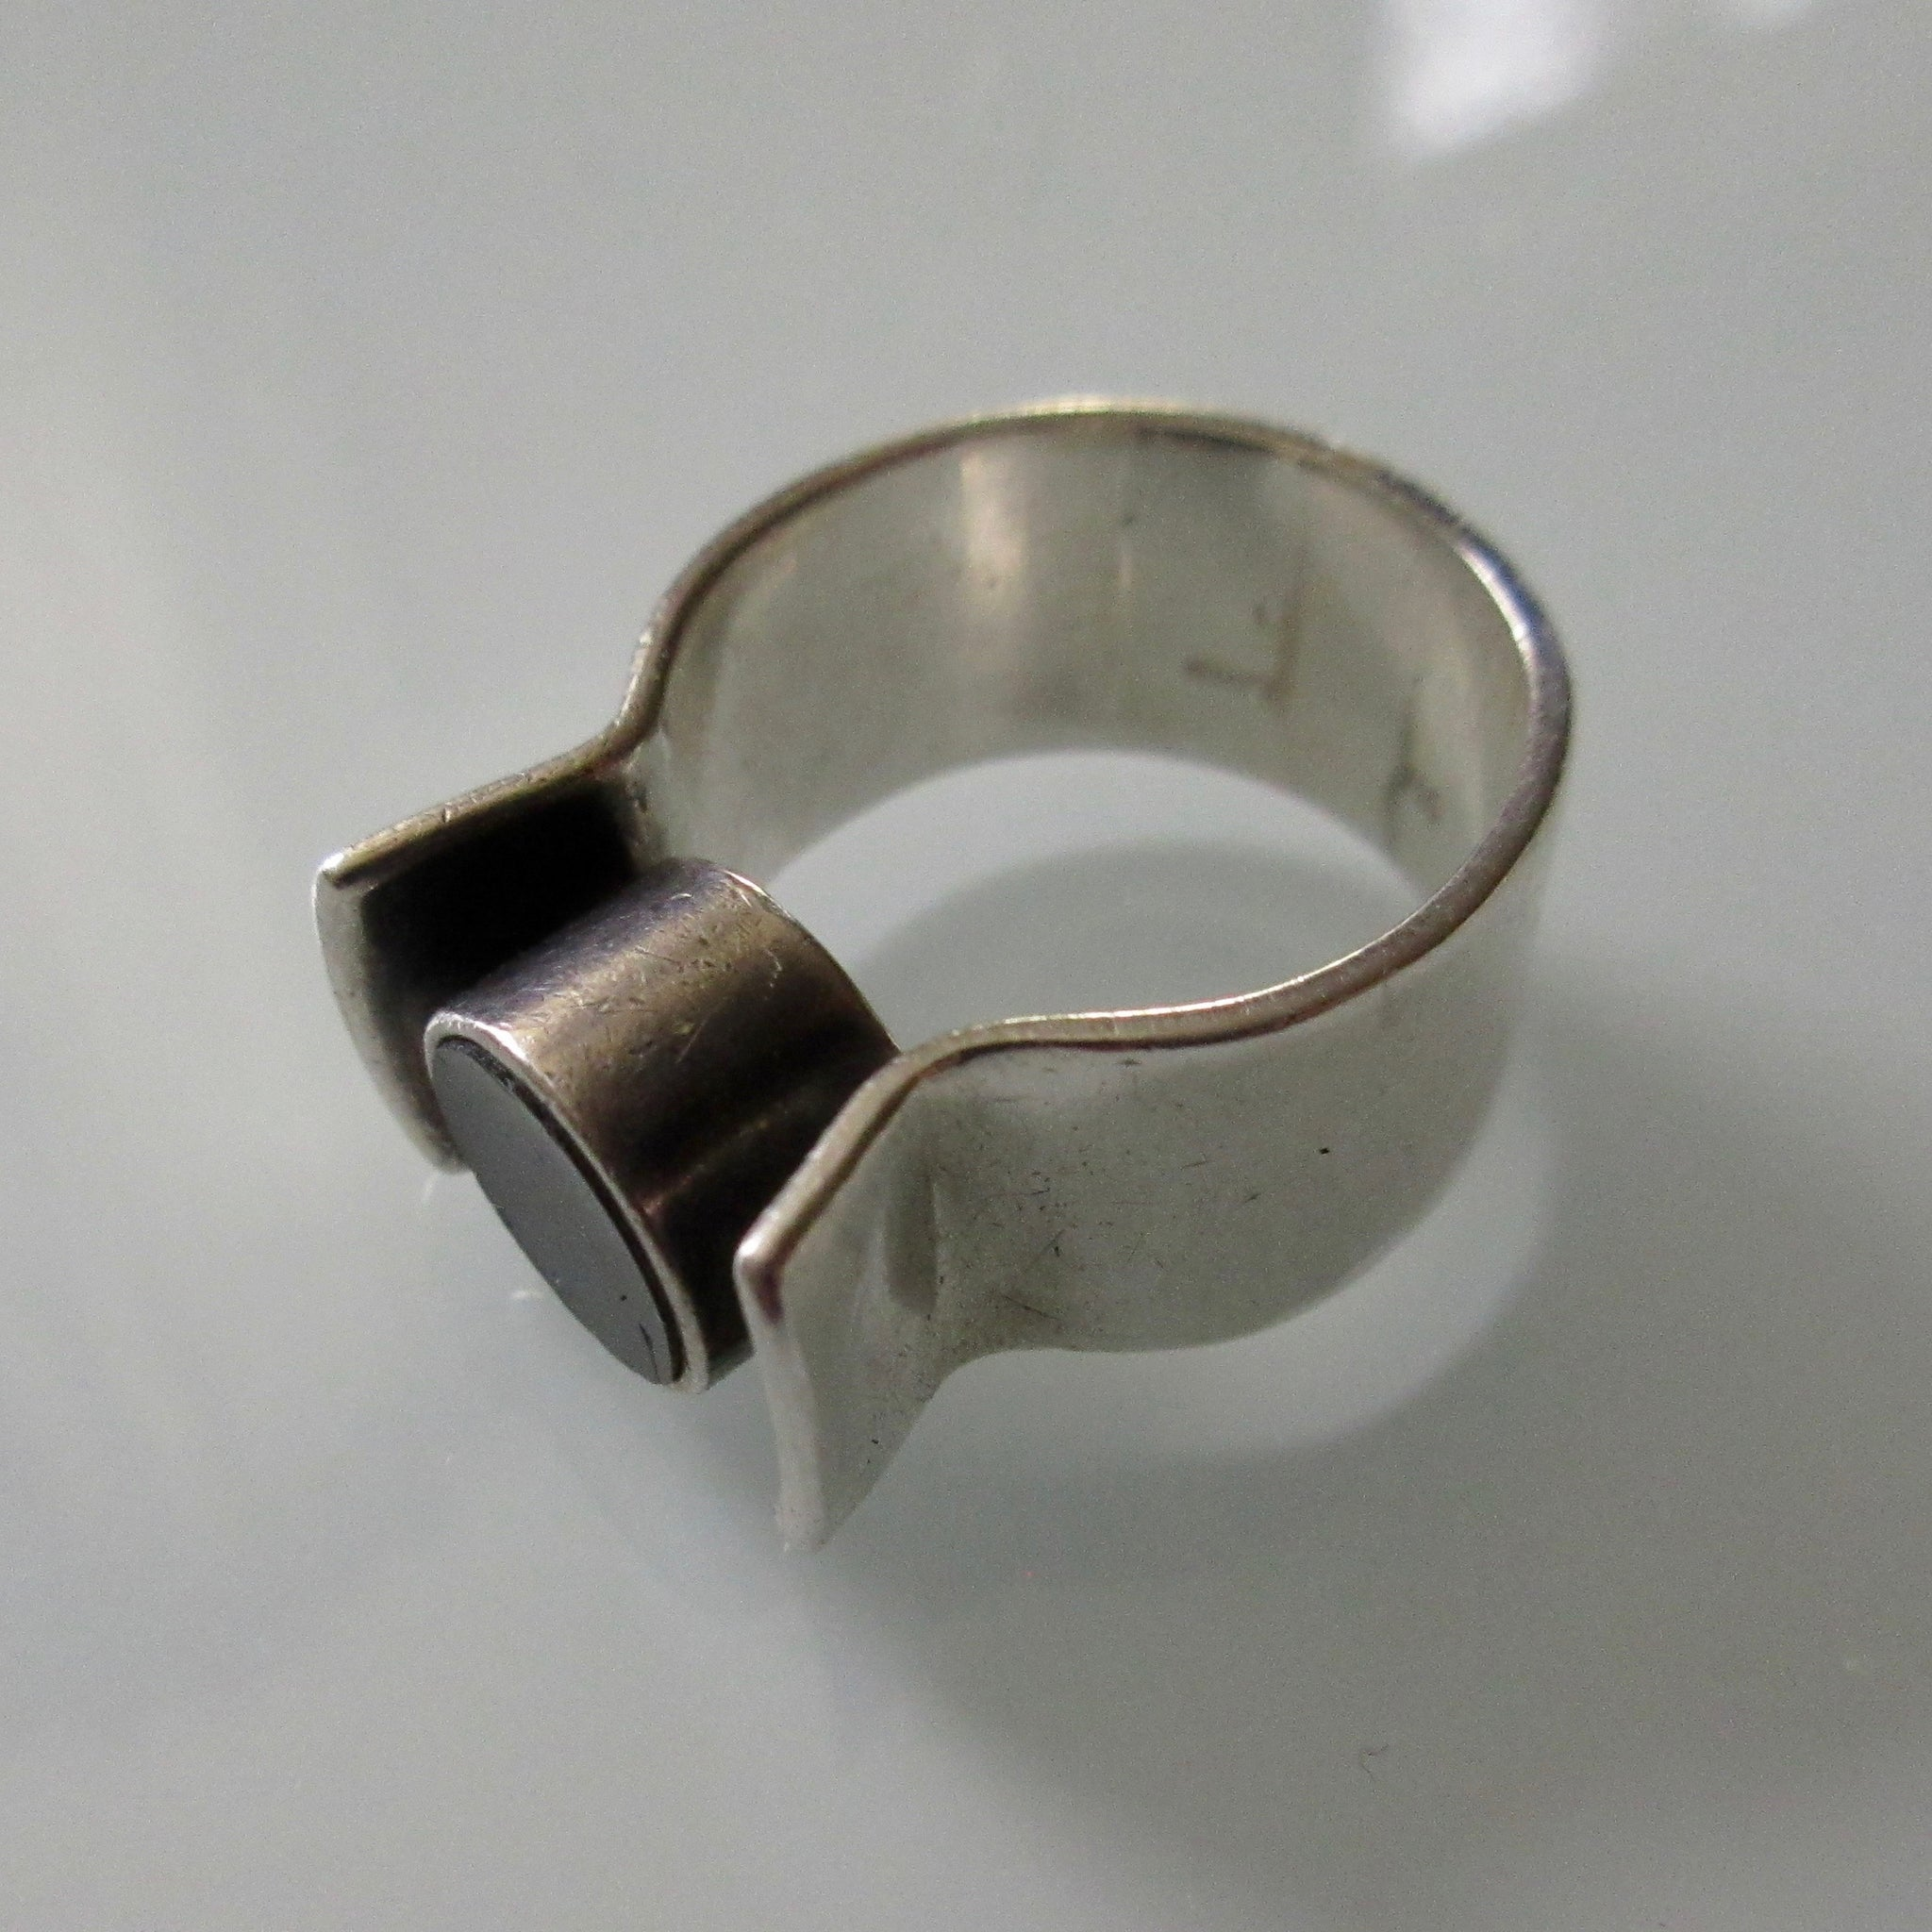 Modernist Sterling Silver with Inset Stone Ring